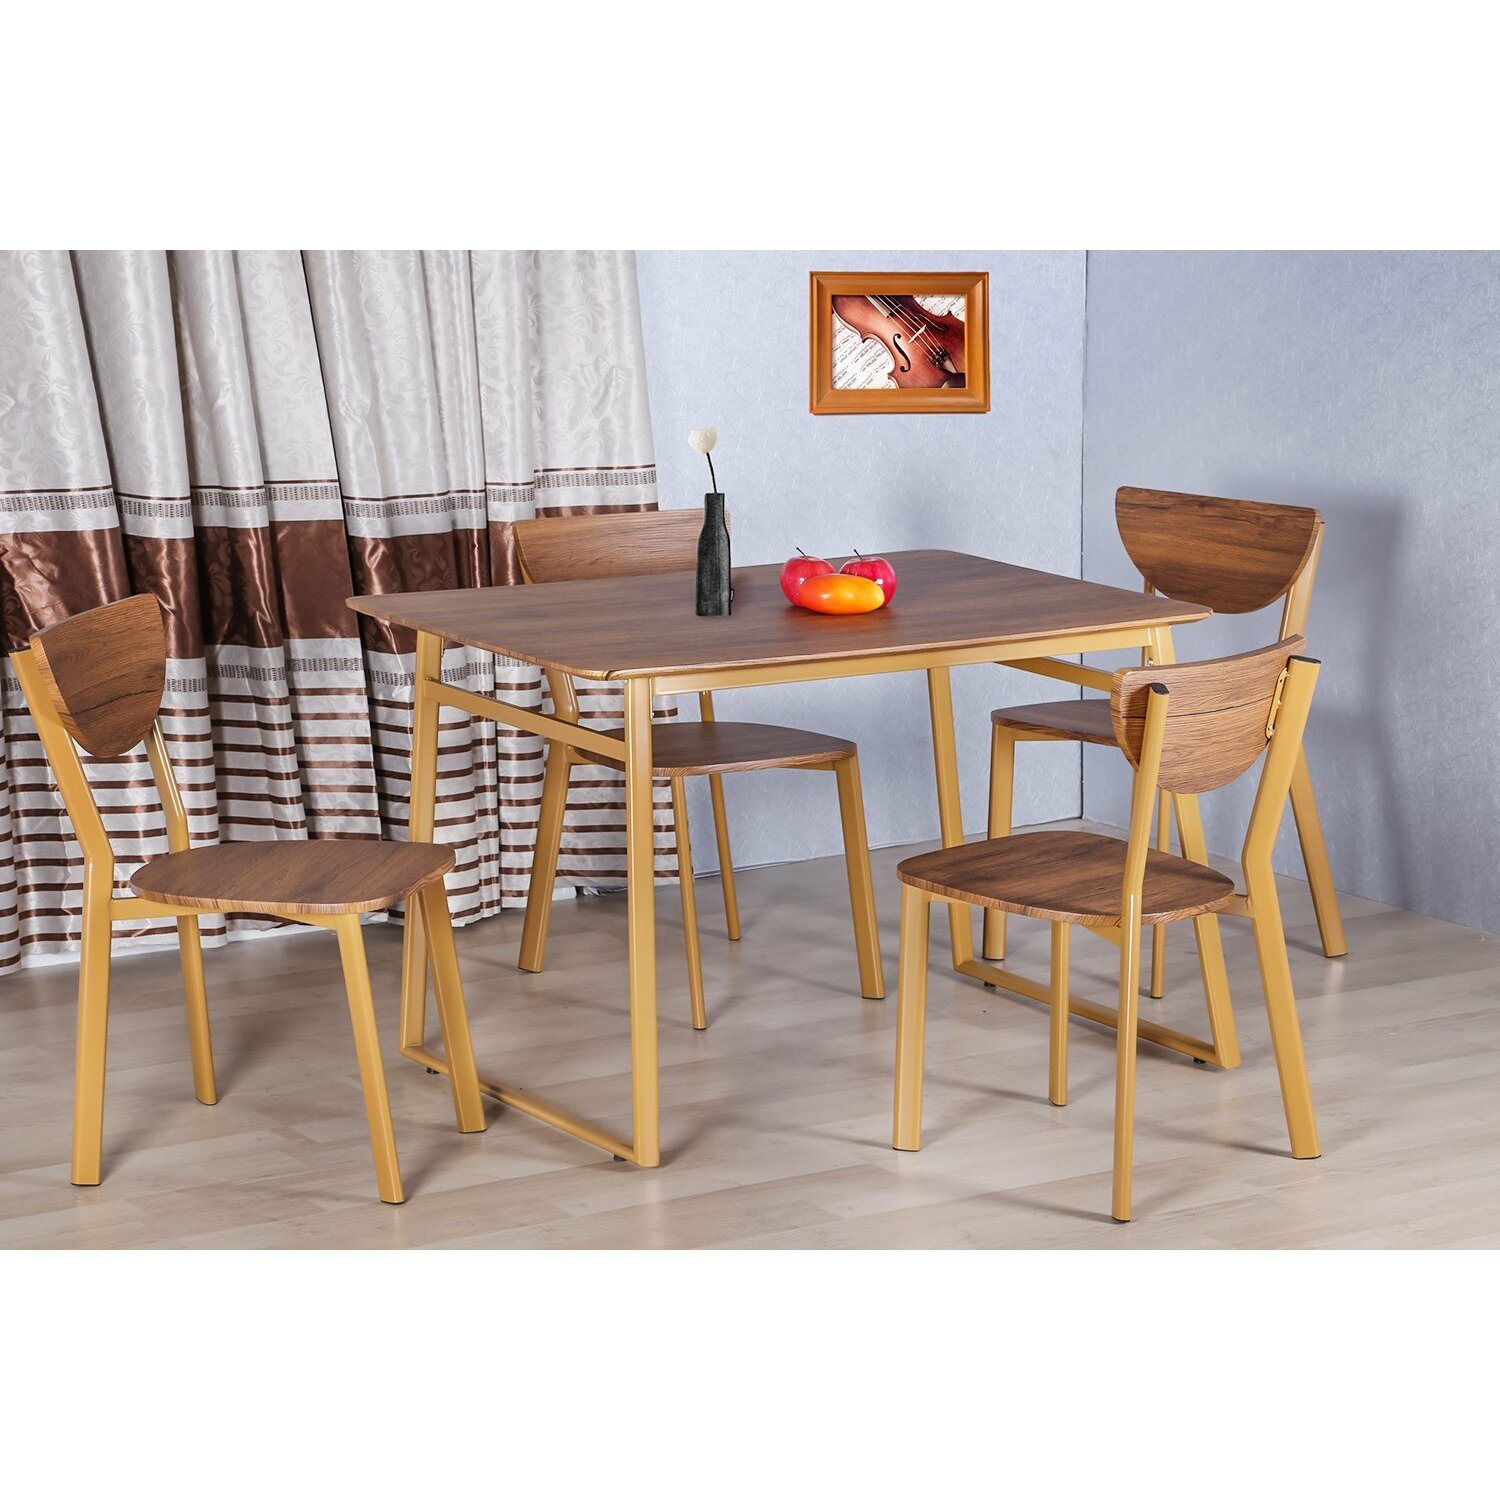 Merax Merax Stylish 5 Piece Dining Set Dining Table Set Wayfair